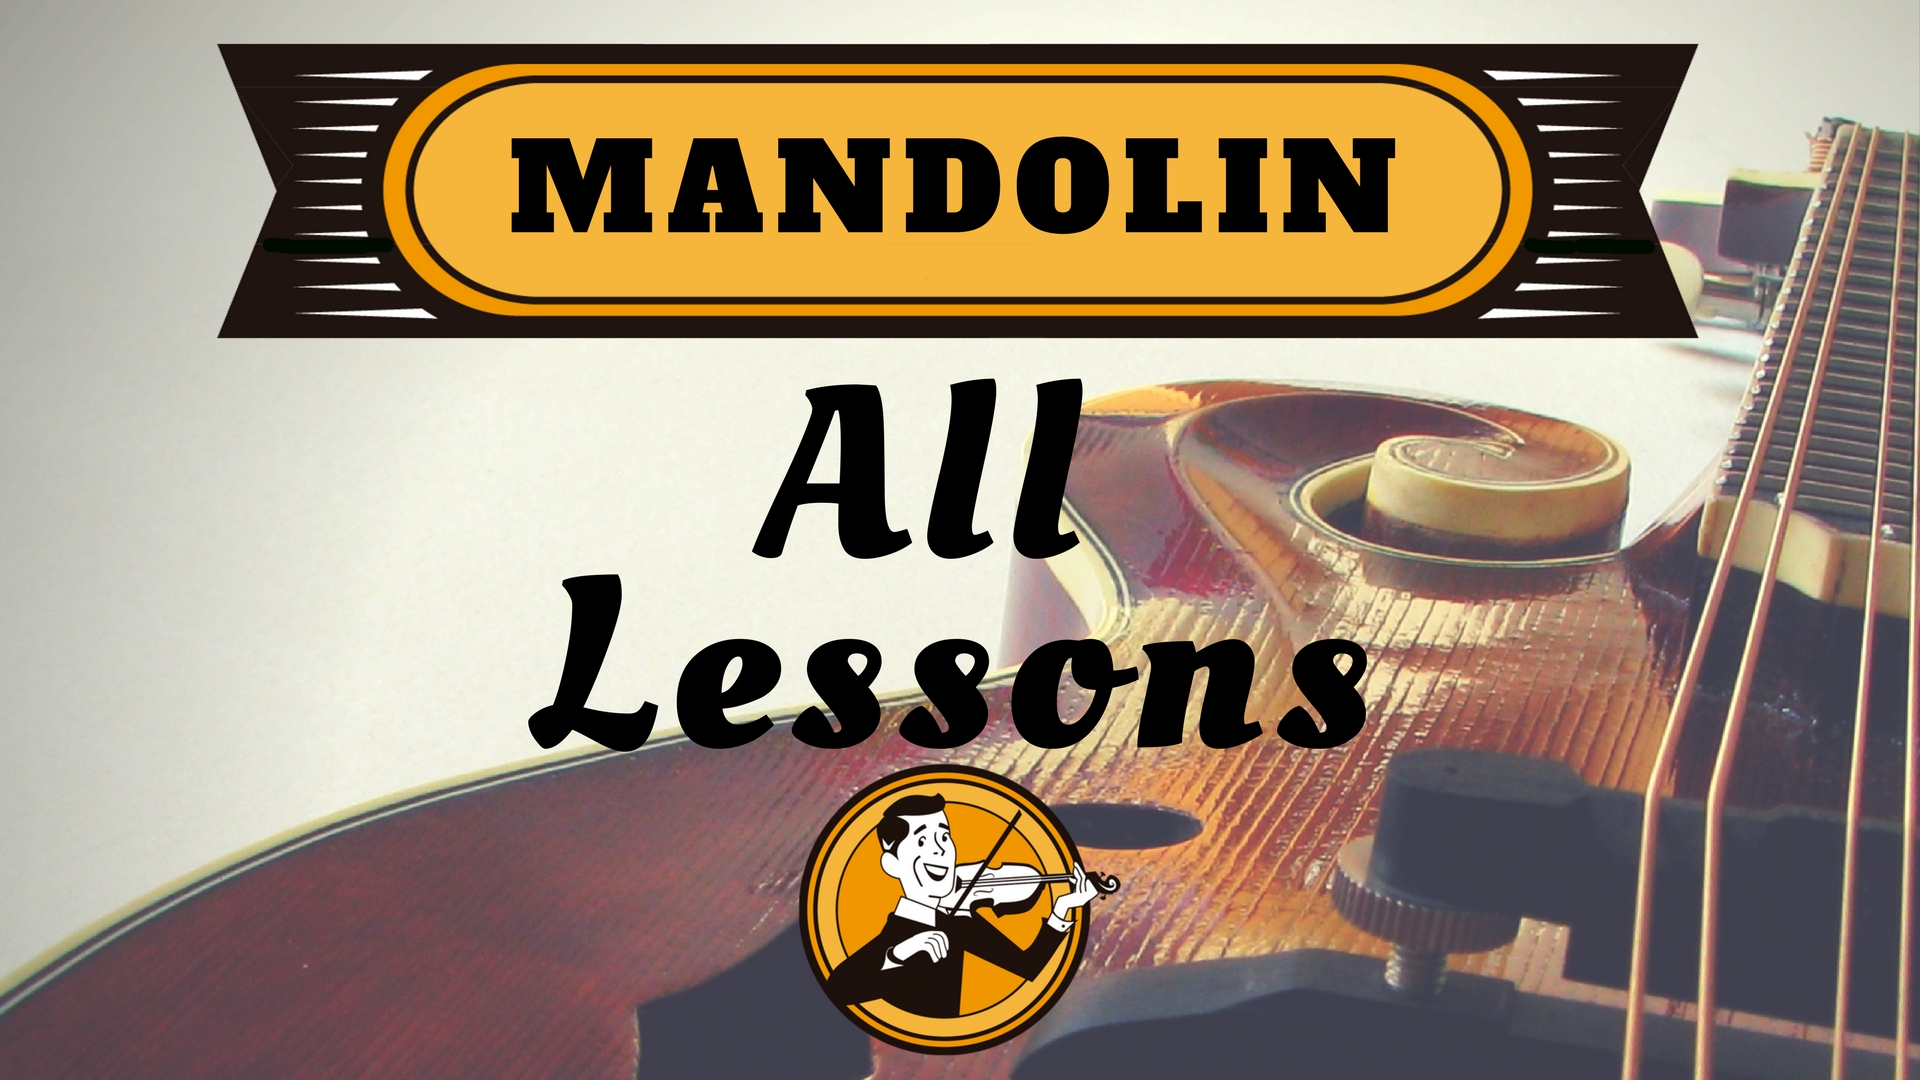 Mandolin All mandolin lessons